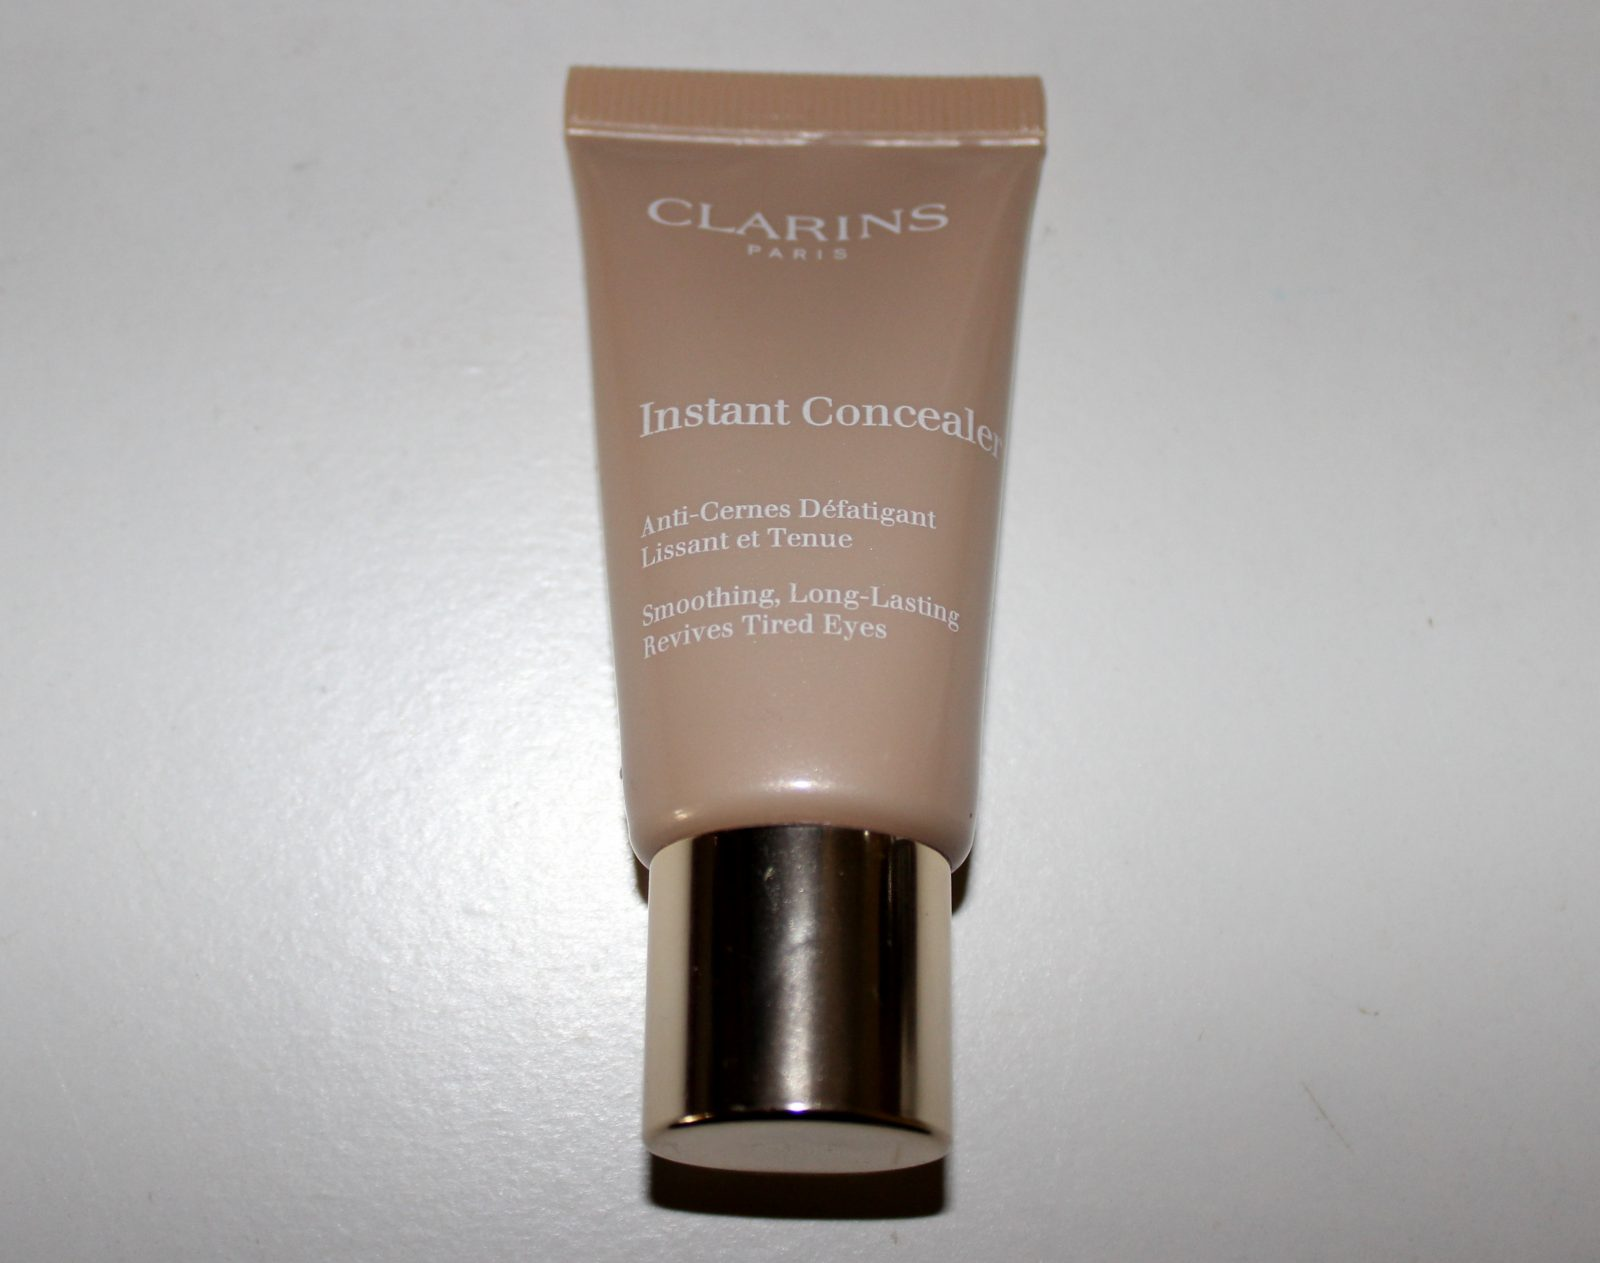 Clarins Instant Concealer A Review - Irish Beauty Blog Beautynook